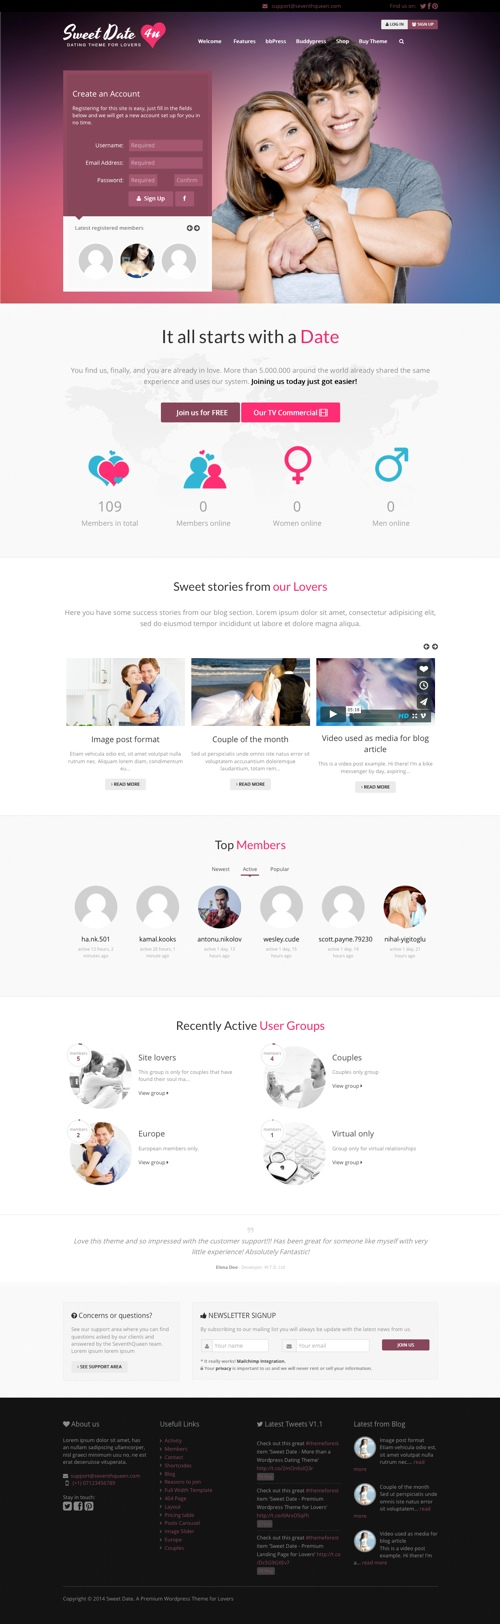 dating website template wordpress theme To create a dating website using wordpress, you need to find one of the best dating theme with a features that will make your work easier sweetdate is one of the best premium dating wordpress theme packaged with great features, beautiful user interface design and intuitive administration panel with tons of options.